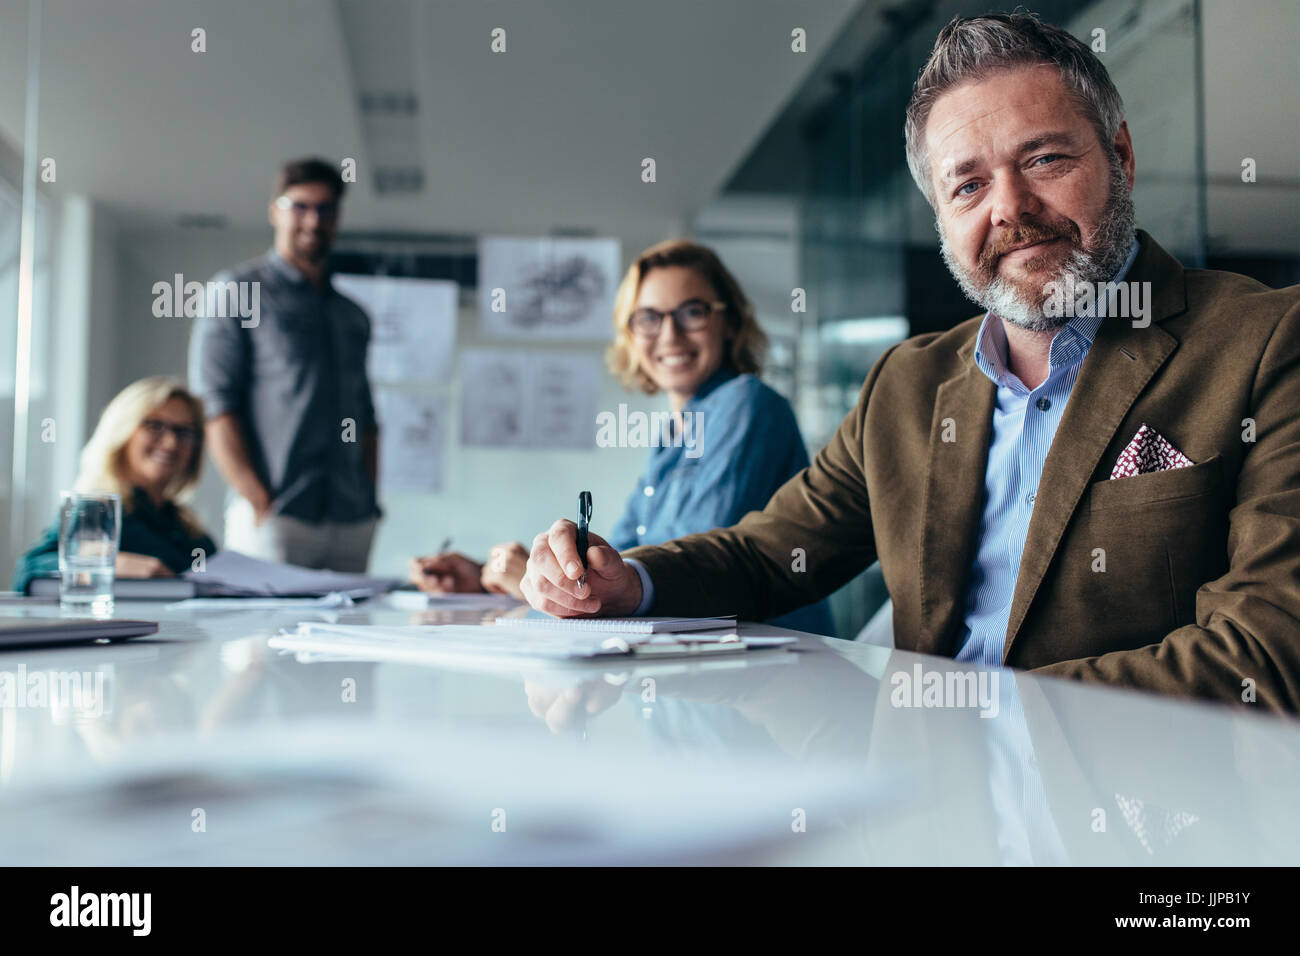 Businesspeople looking at camera with smile. Team of professionals sitting in boardroom. - Stock Image